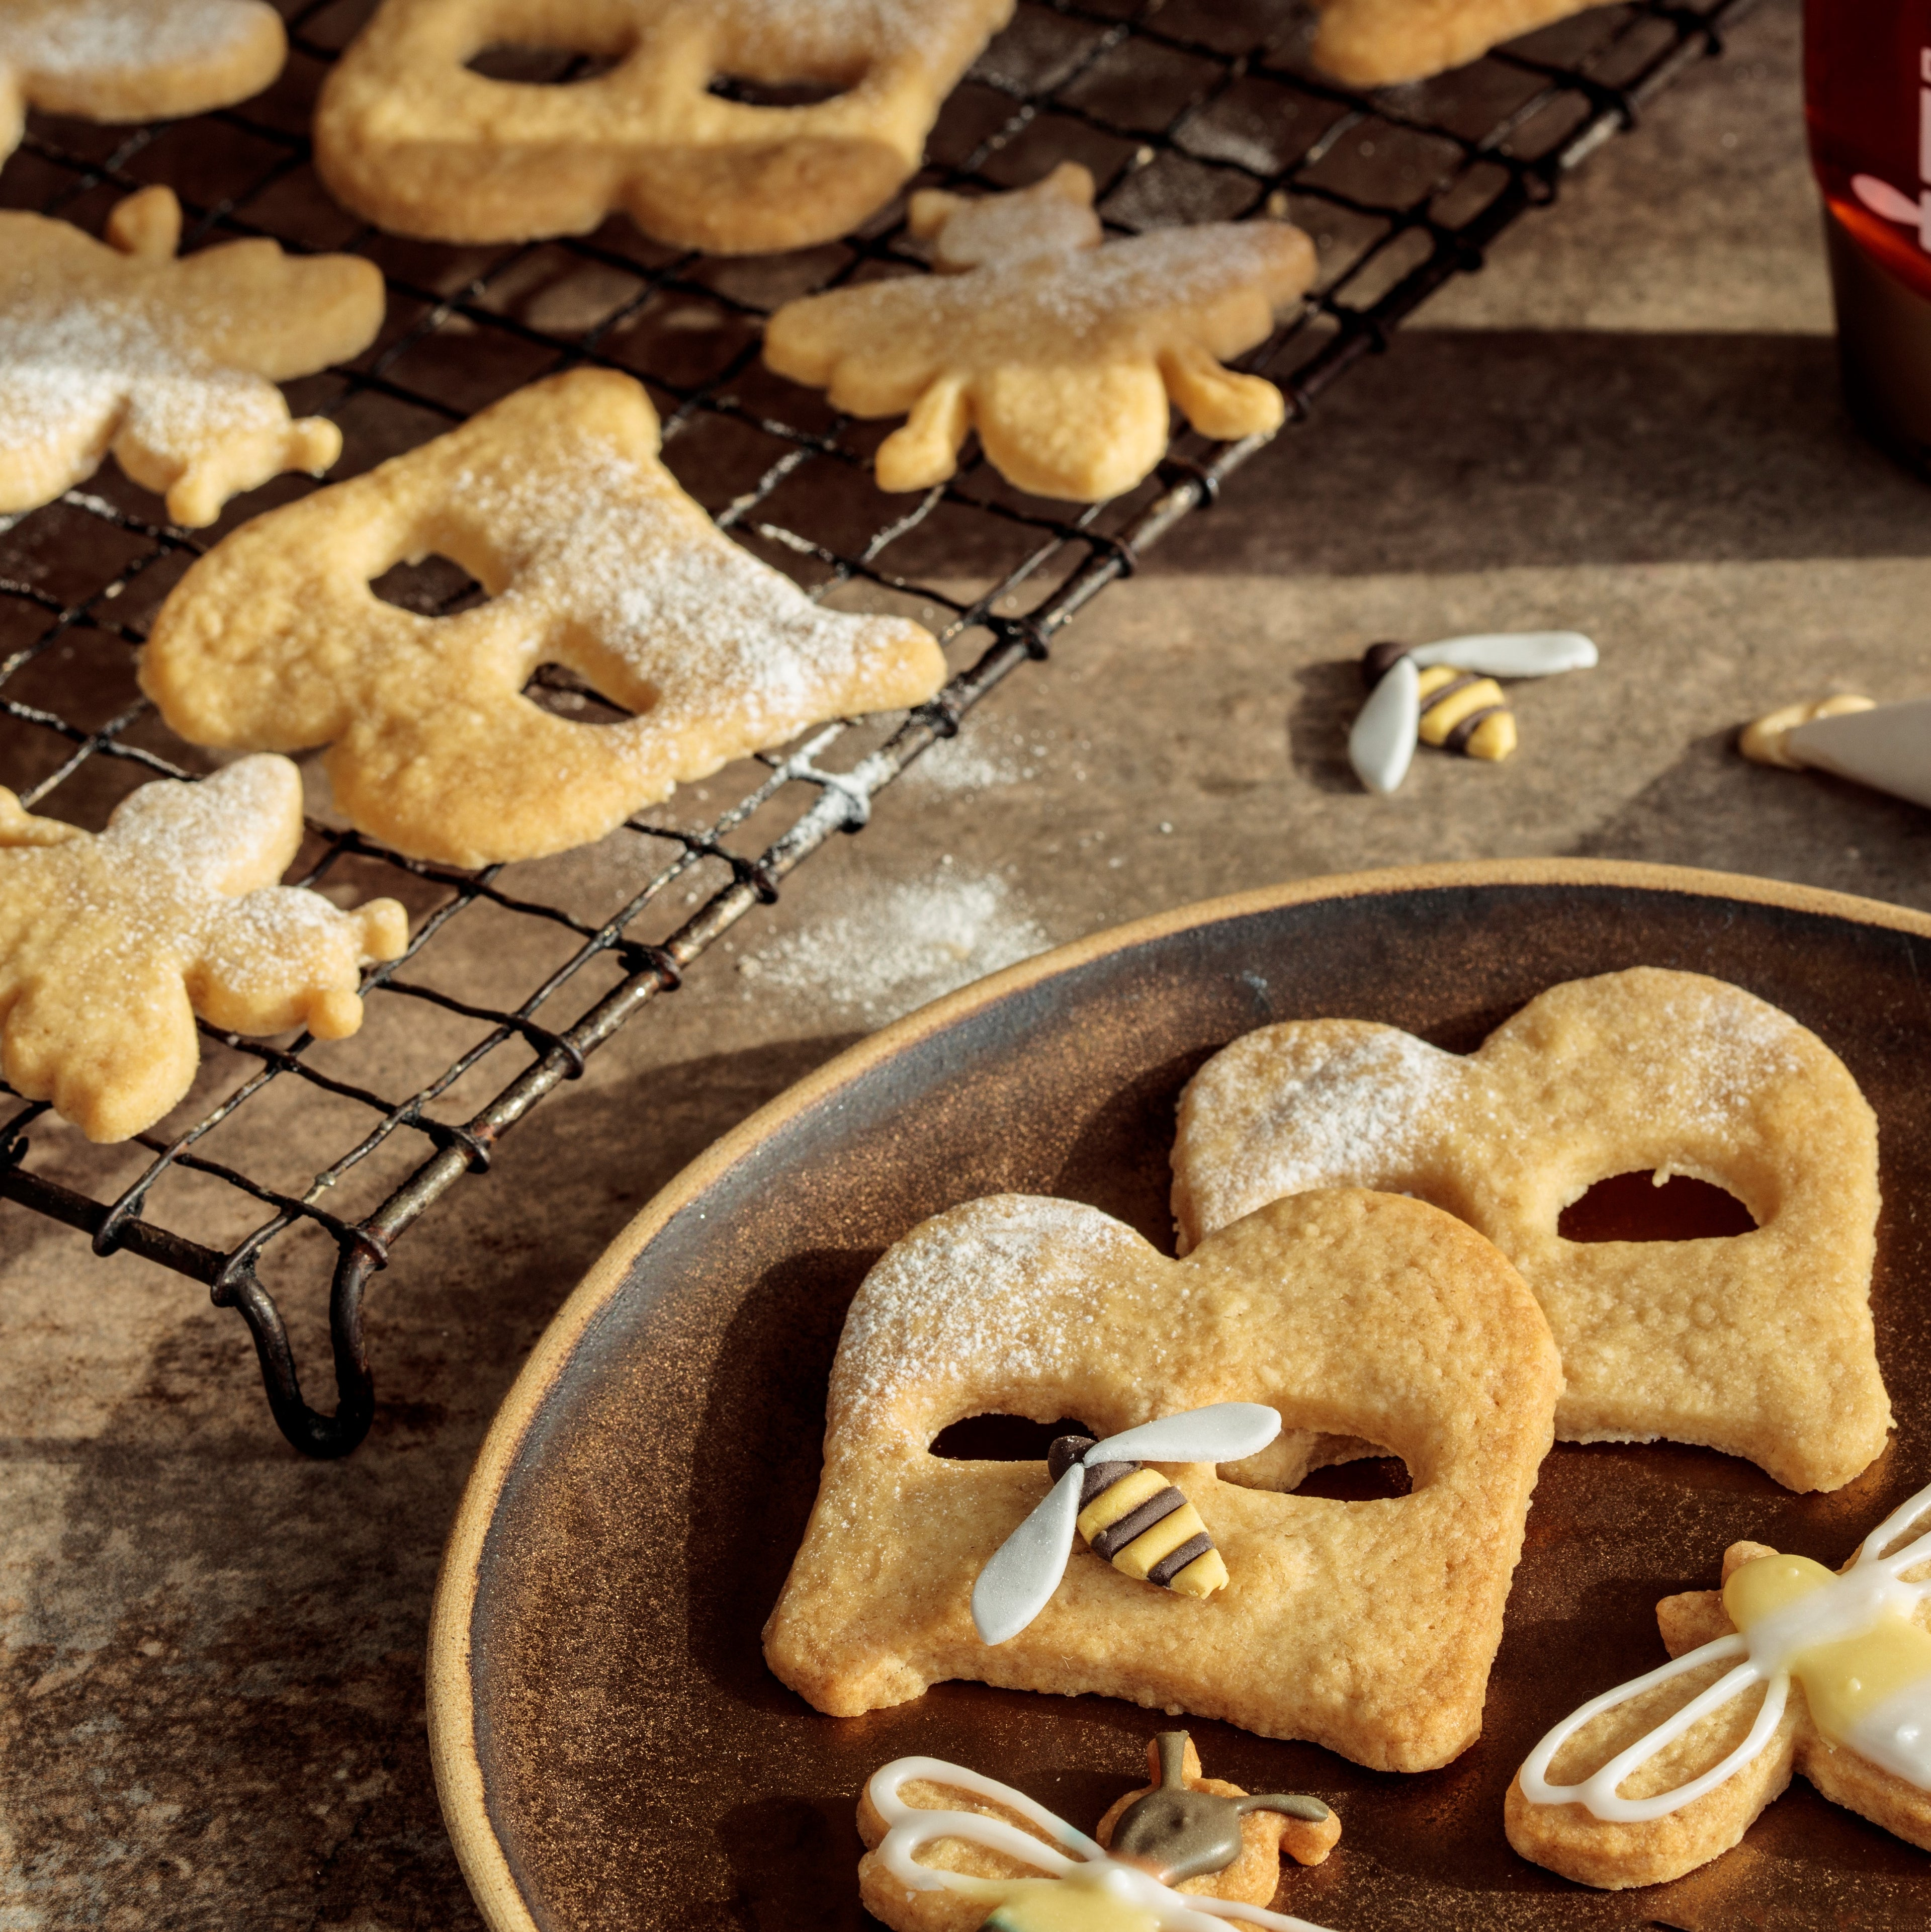 Biscuits in shape of letter B and bumble bees